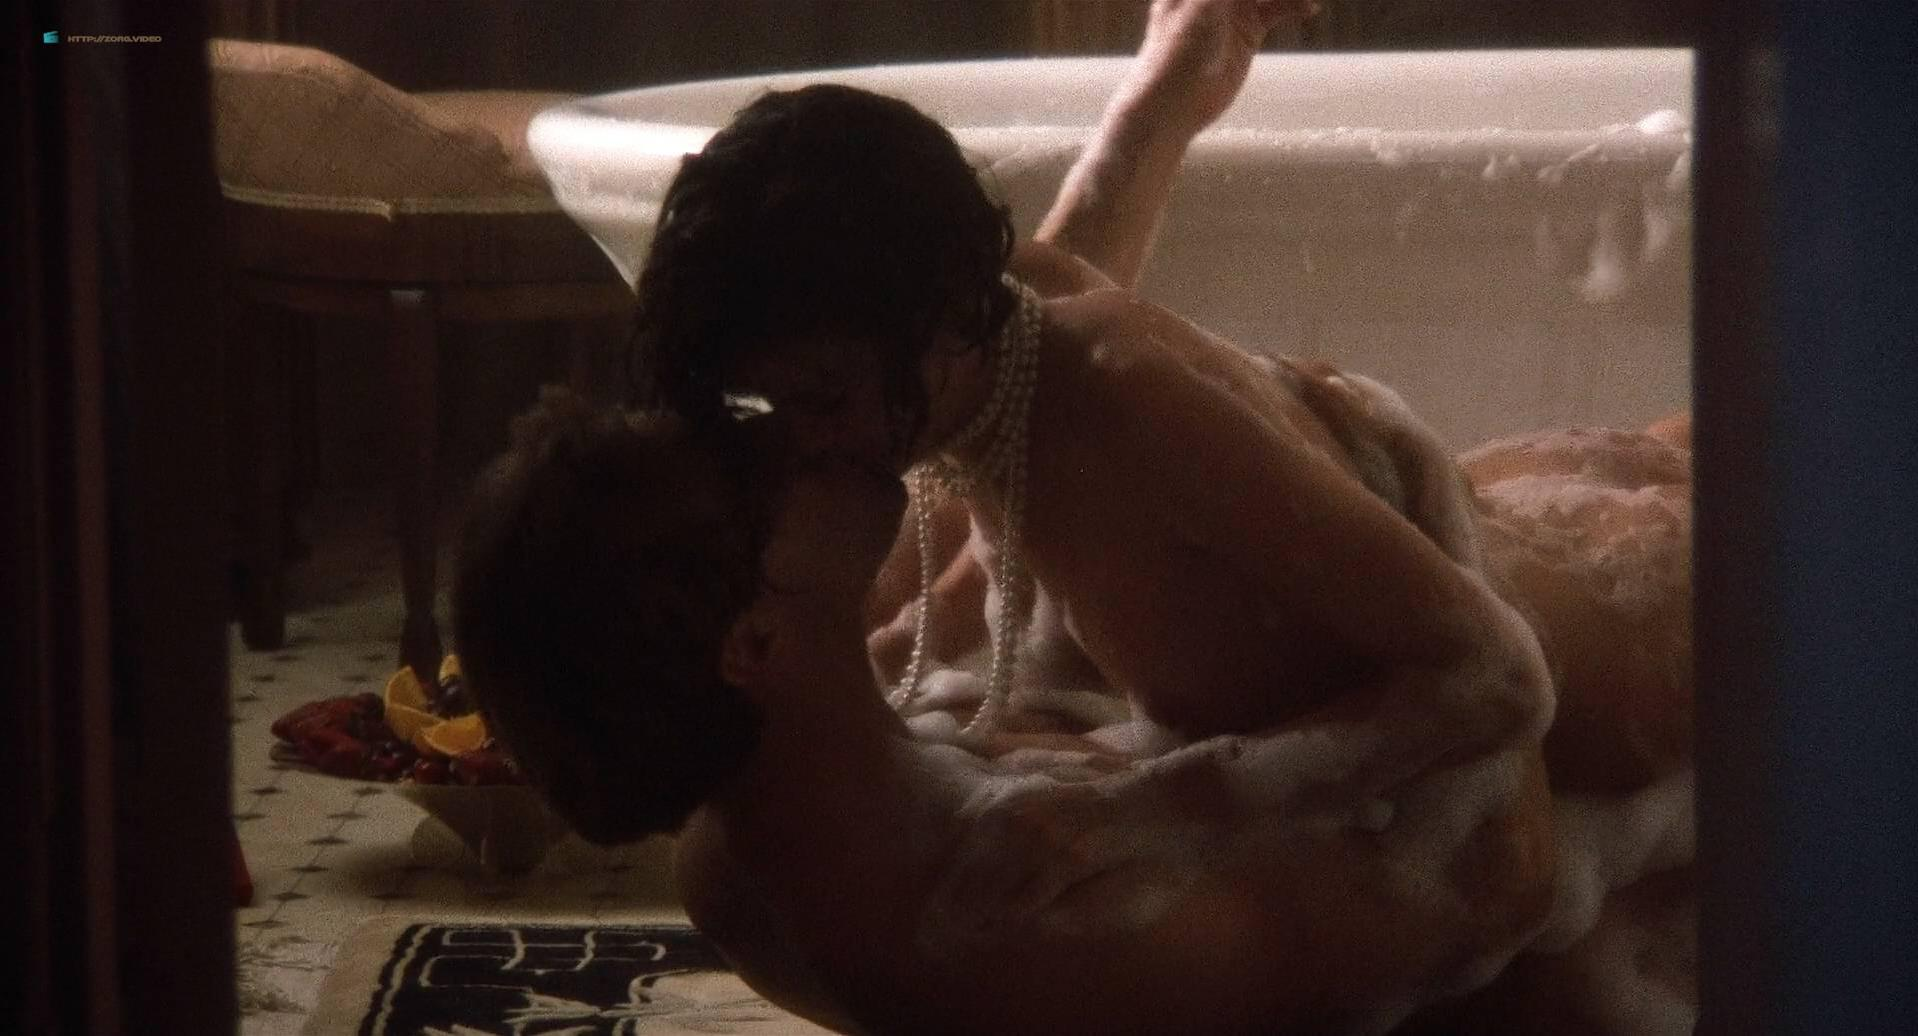 Casually Linda fiorentino sex scene very